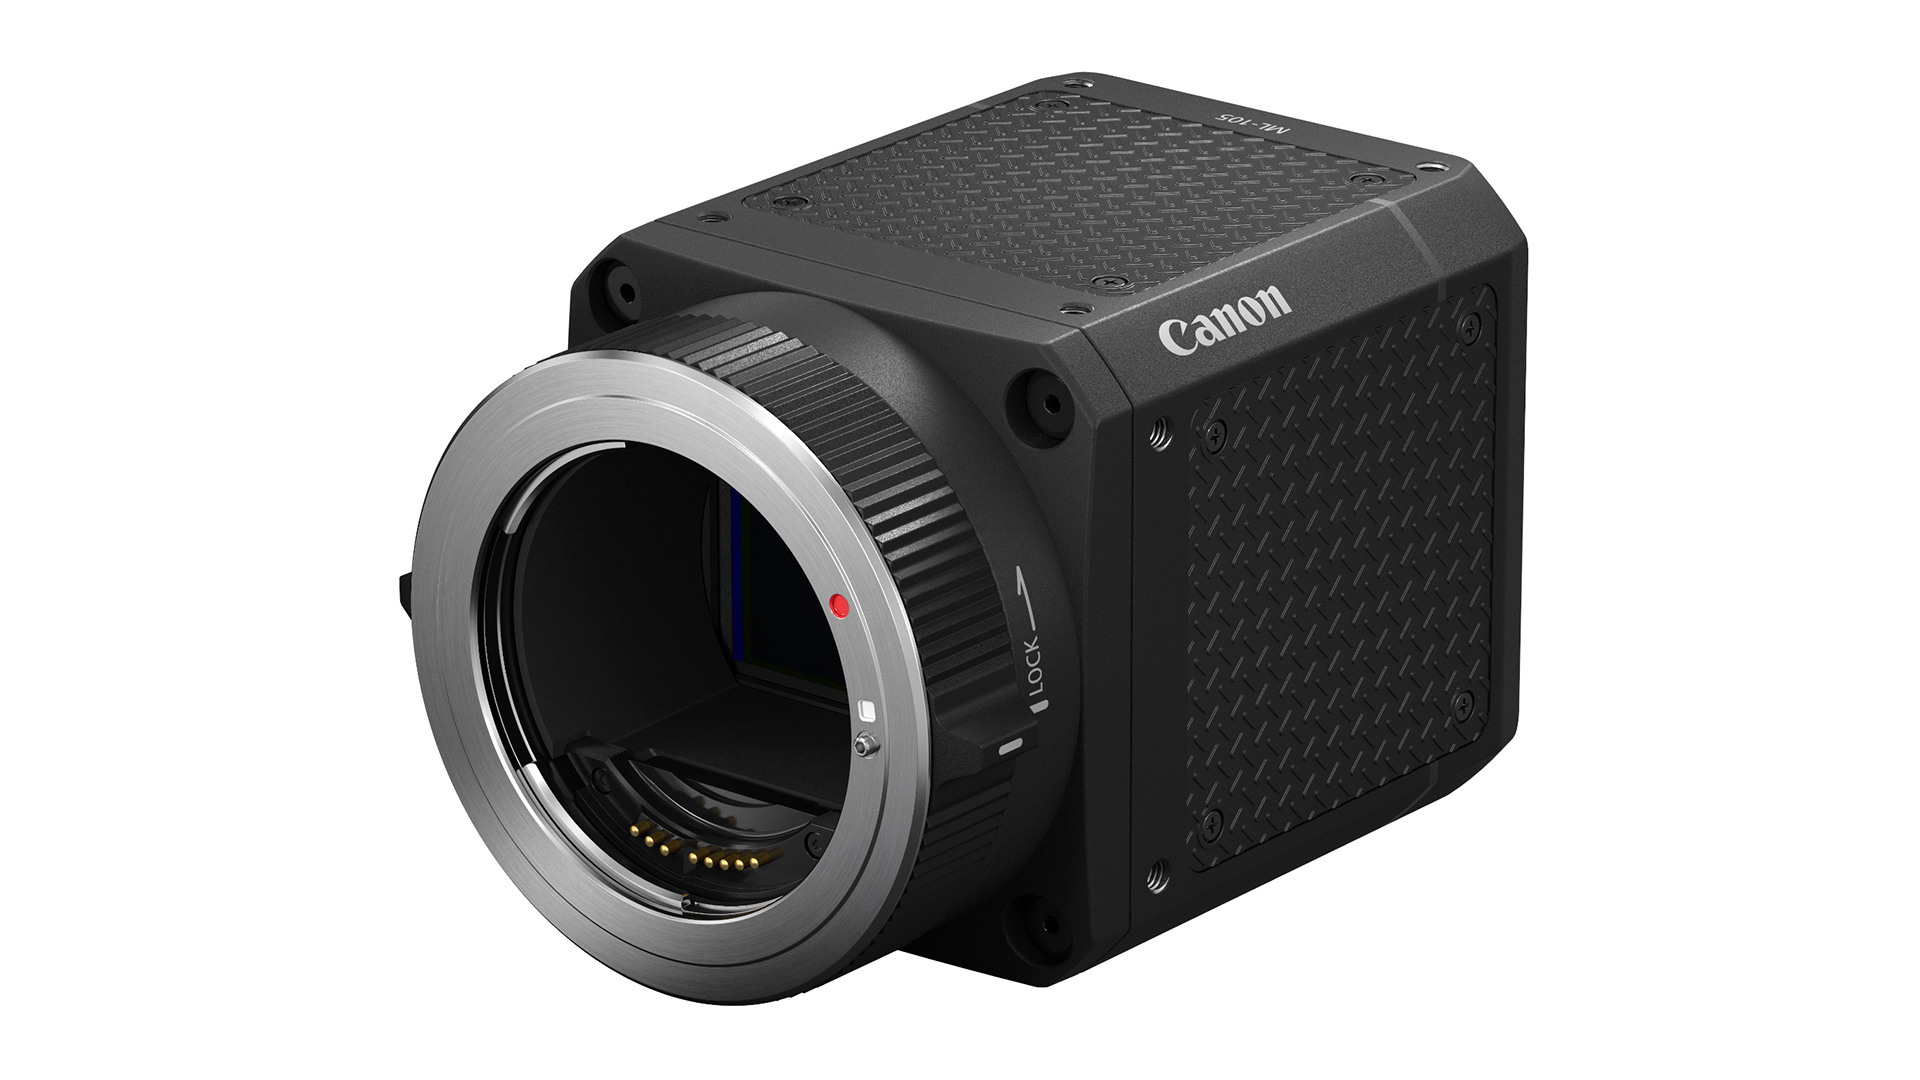 Canon ML-100 camera. Image: Canon.